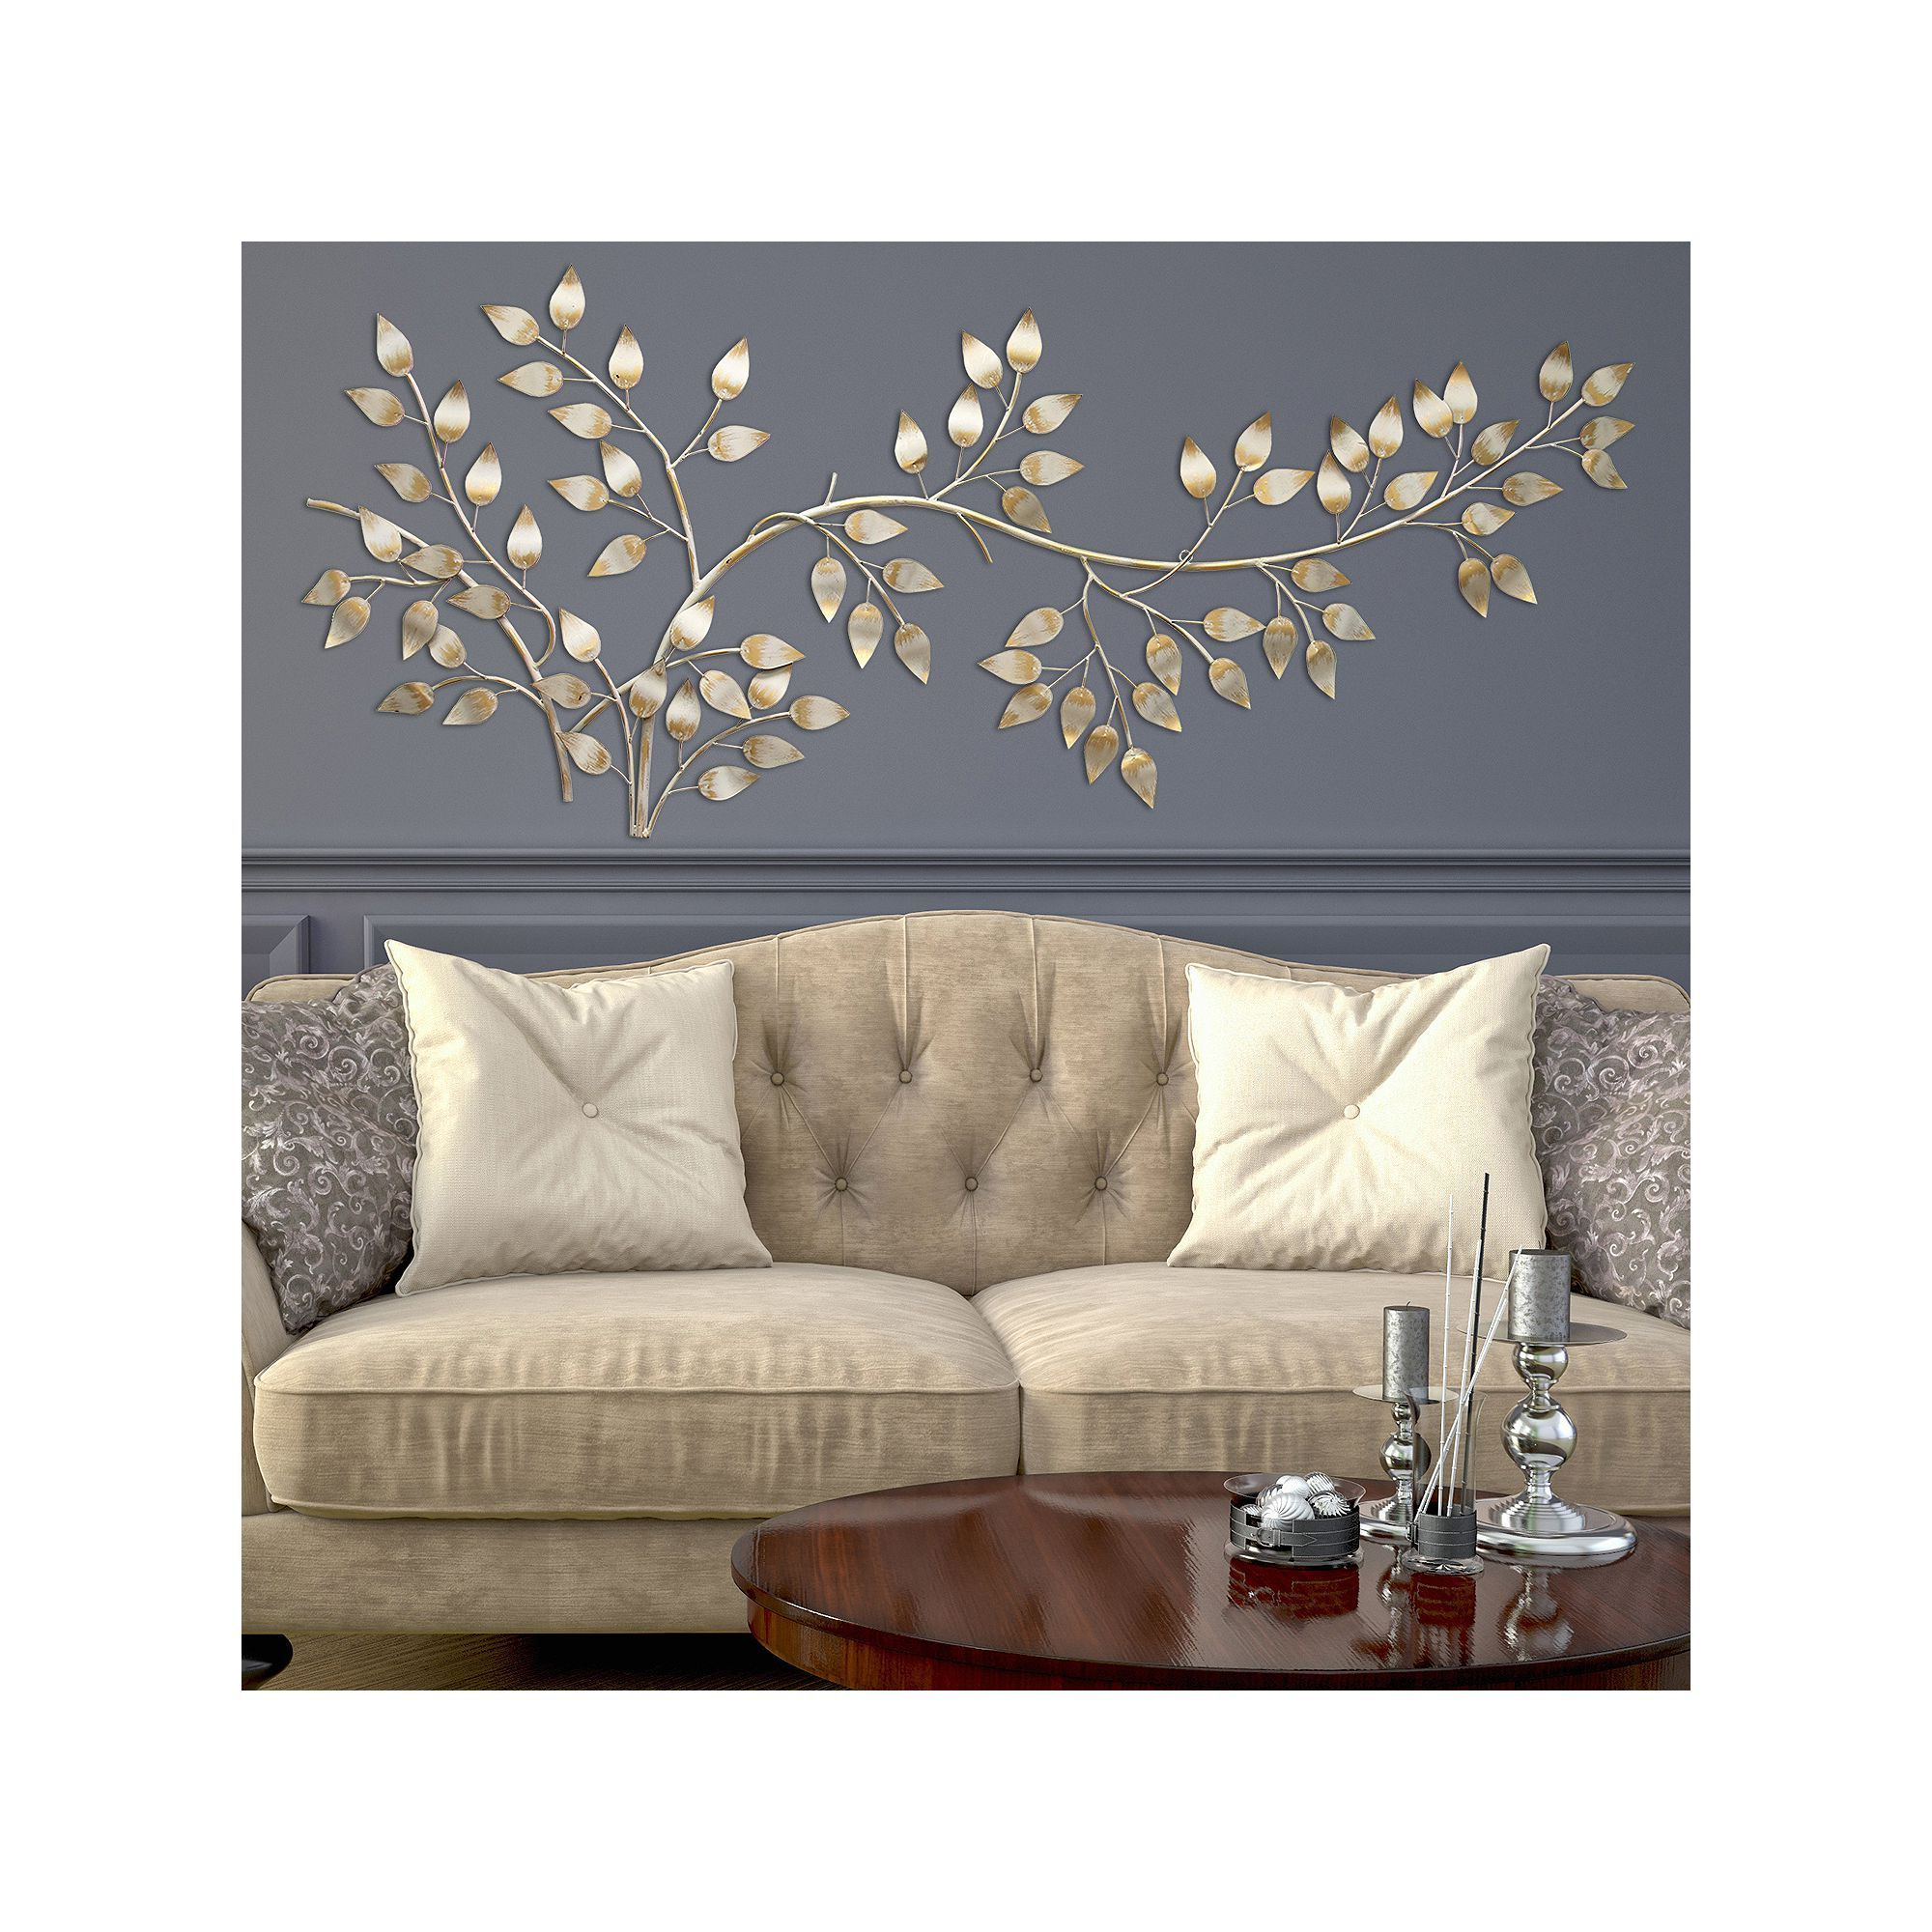 Flowing Leaves Wall Decor Inside Most Recently Released Stratton Home Decor Flowing Leaves Metal Wall Decor In  (View 10 of 20)